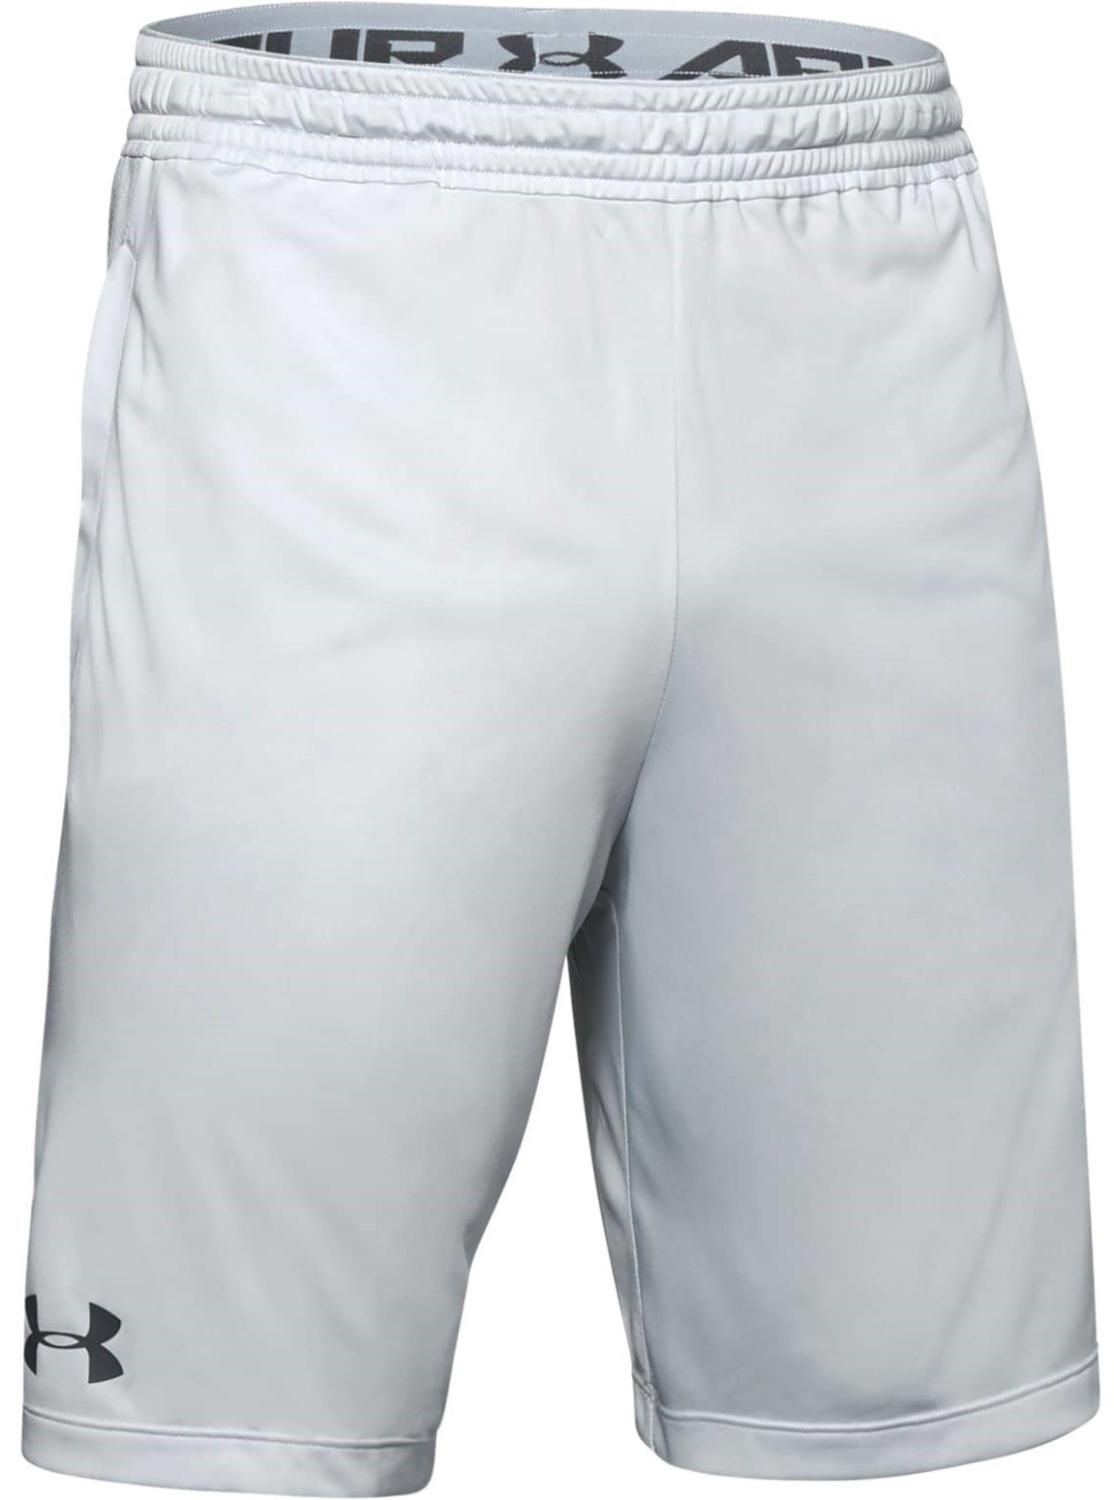 Kraťasy Under Armour Mk1 Short Wordmark, L